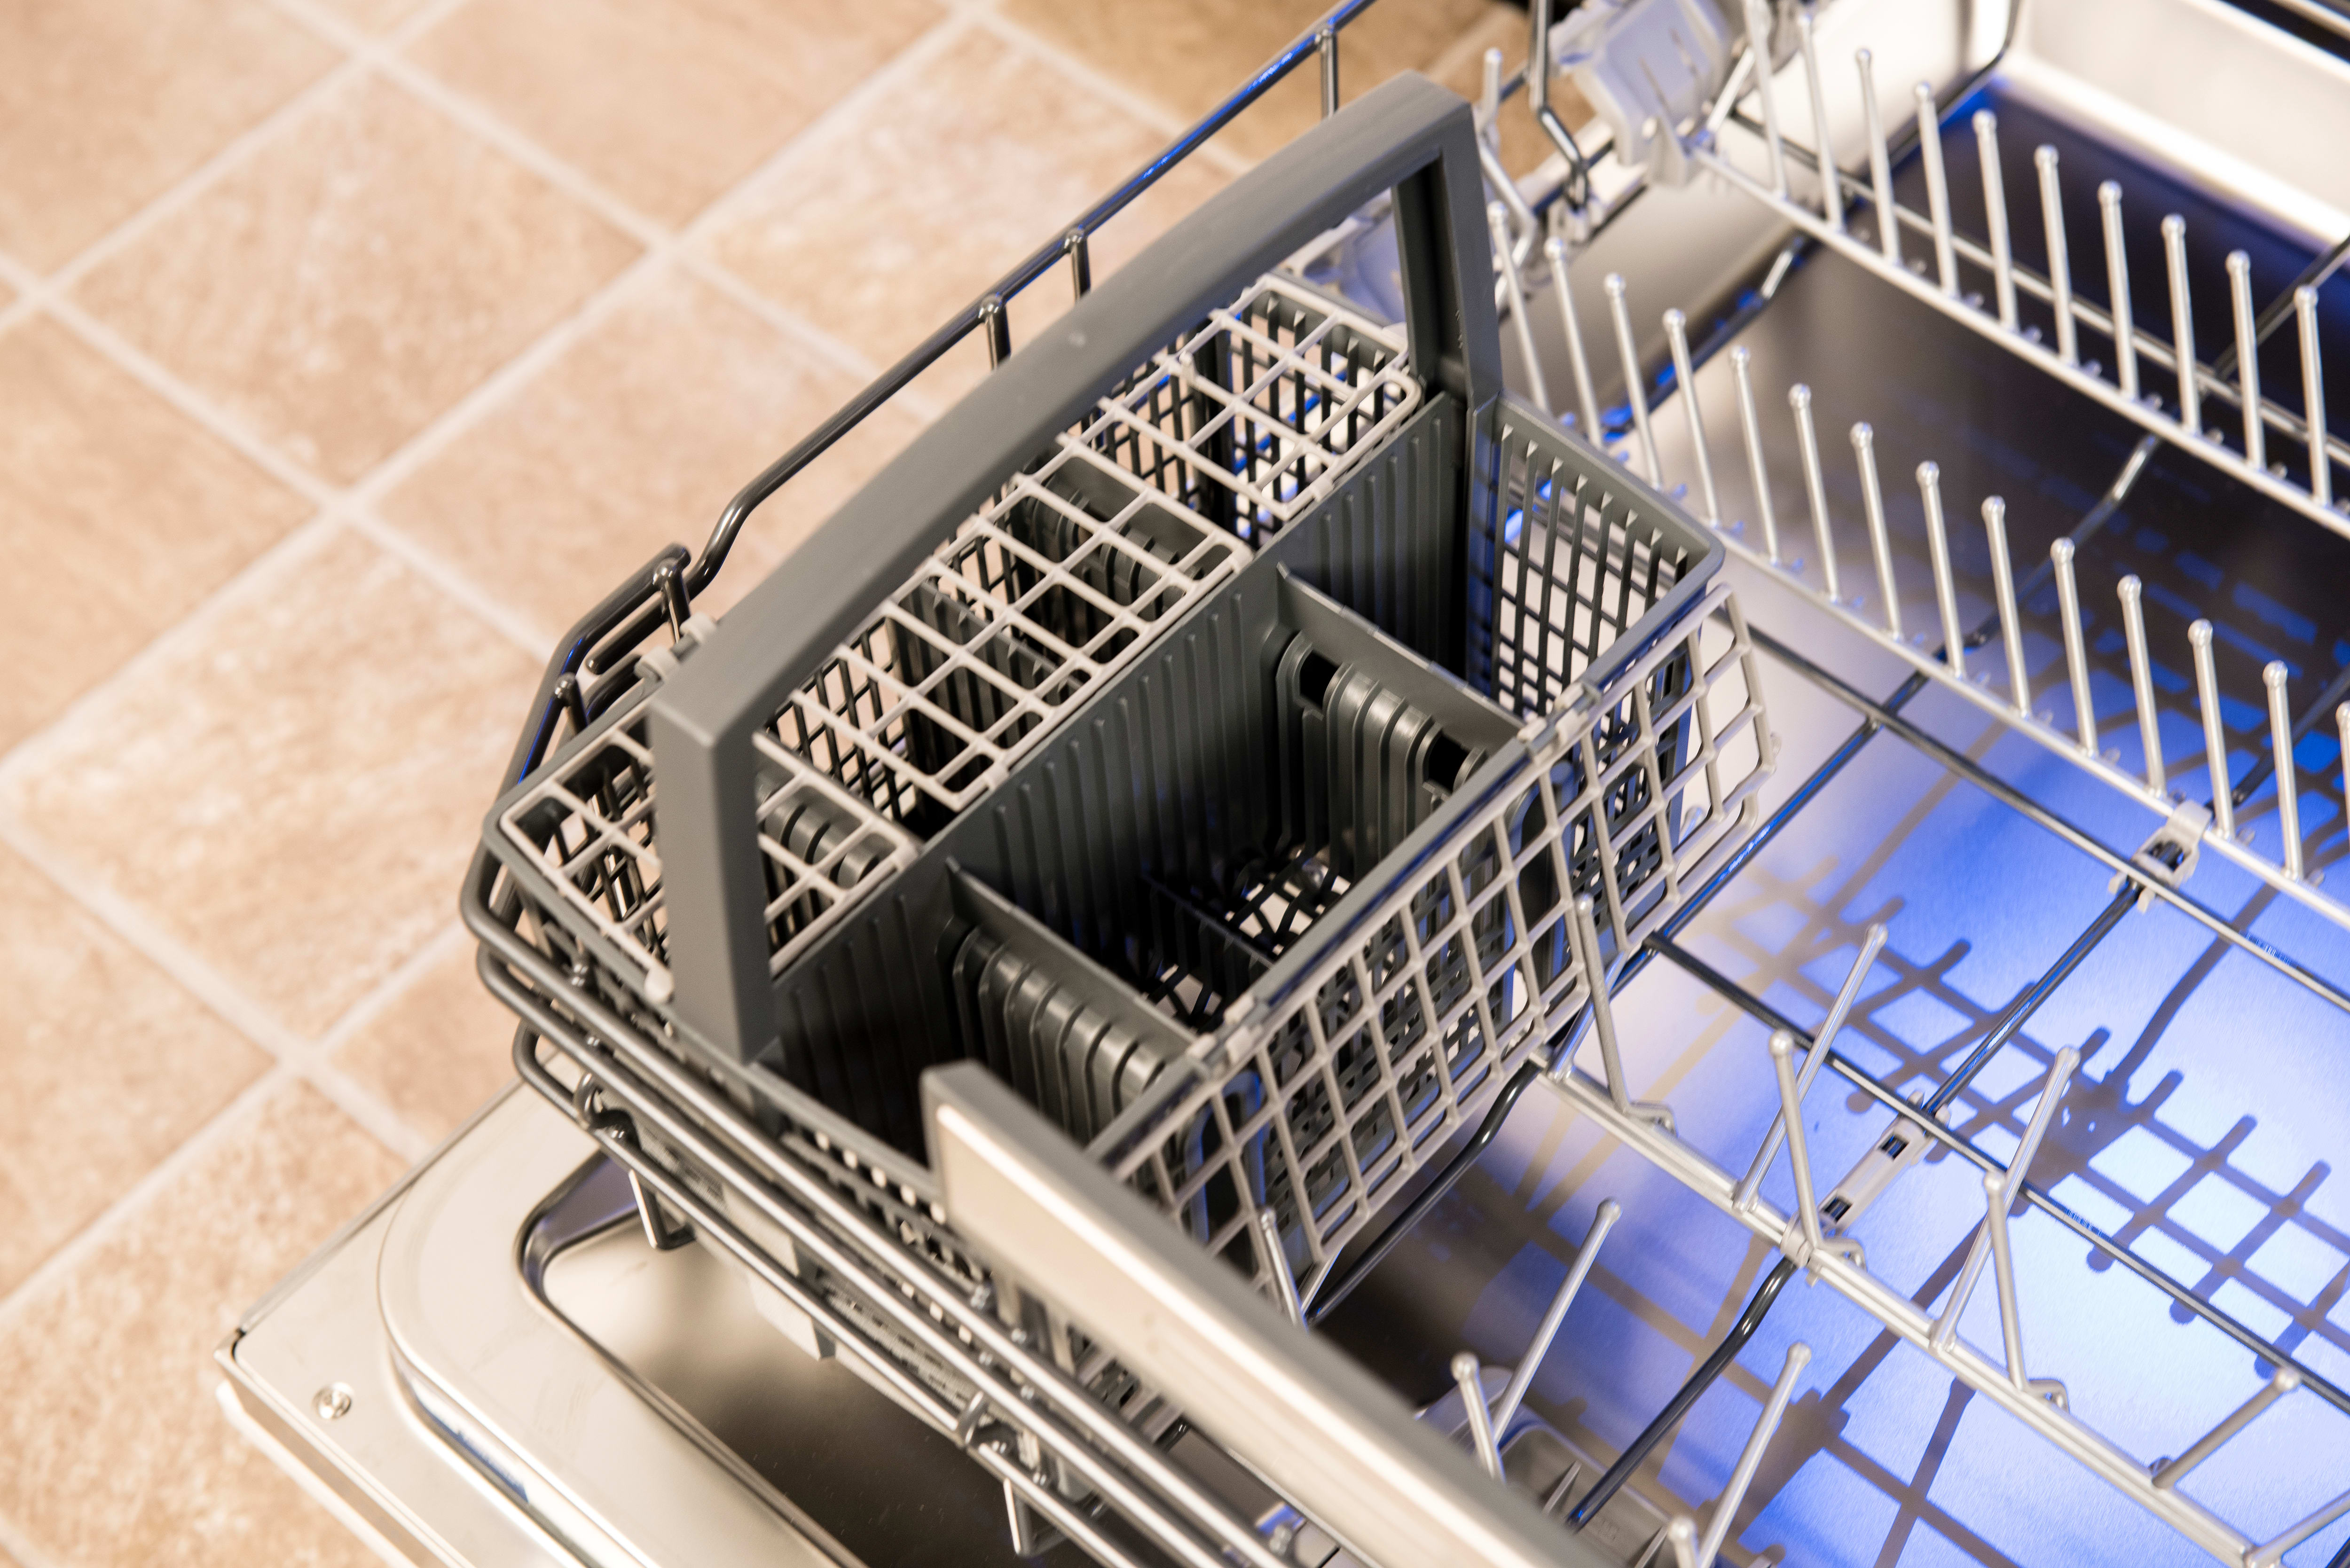 Thermador Sapphire DWHD650JPR cutlery basket